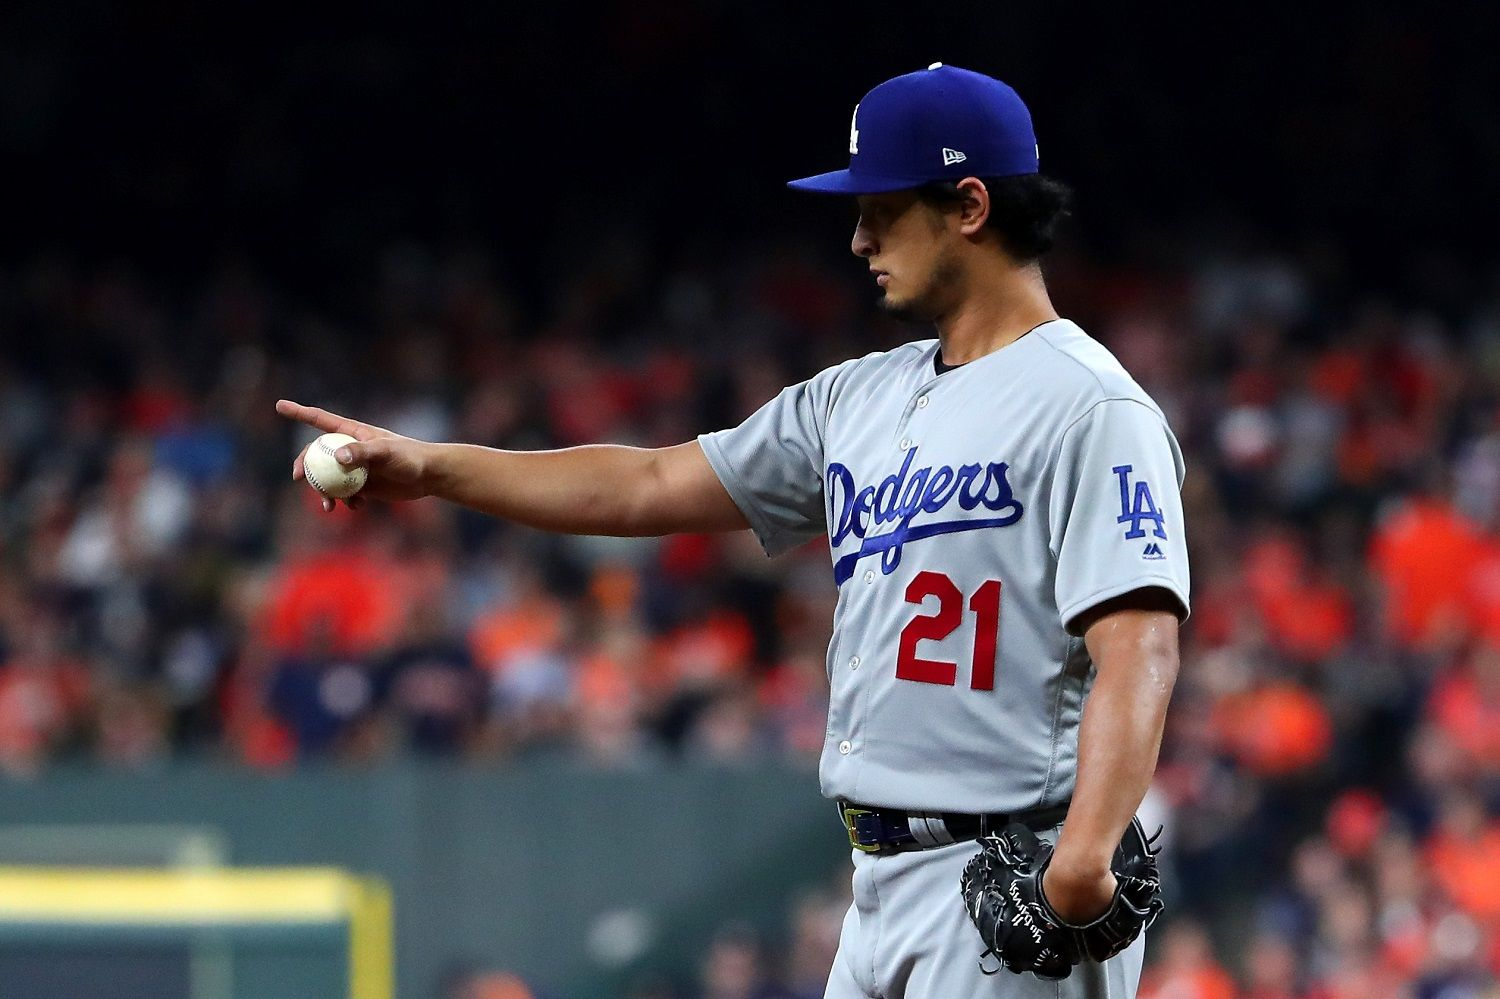 HOUSTON, TX - OCTOBER 27:  Yu Darvish #21 of the Los Angeles Dodgers reacts during the second inning against the Los Angeles Dodgers in game three of the 2017 World Series at Minute Maid Park on October 27, 2017 in Houston, Texas.  (Photo by Tom Pennington/Getty Images)